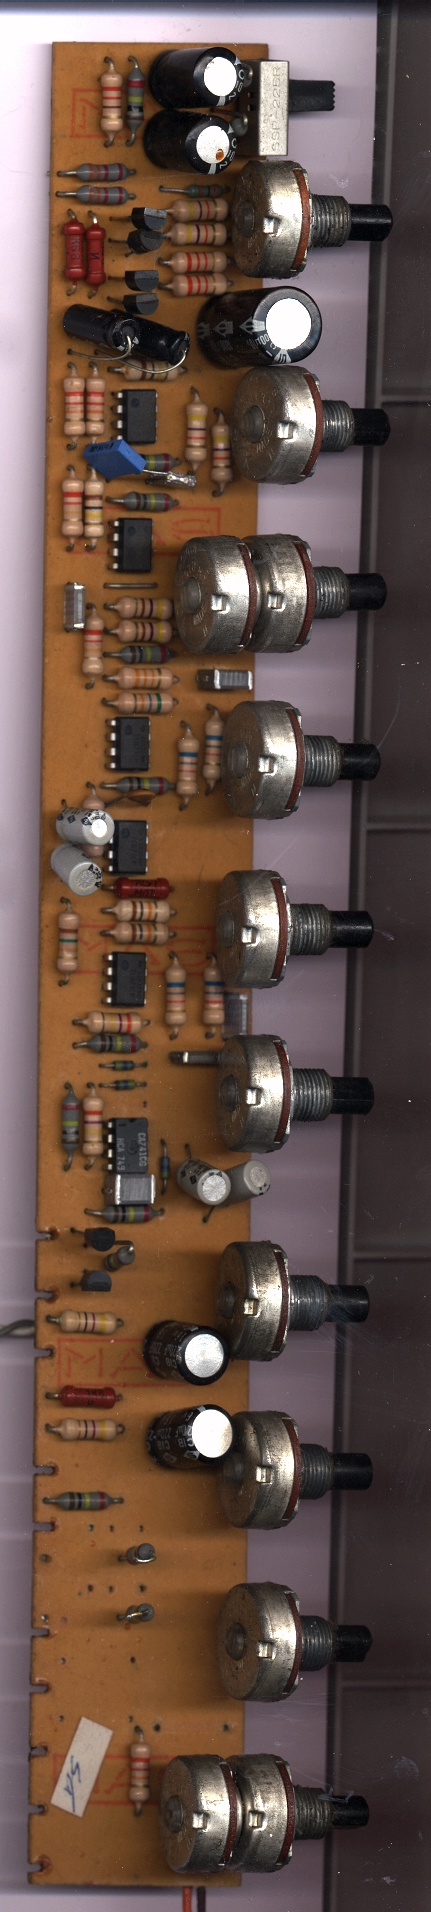 Mixing Desk with 741 and 742 opamps - Gearslutz